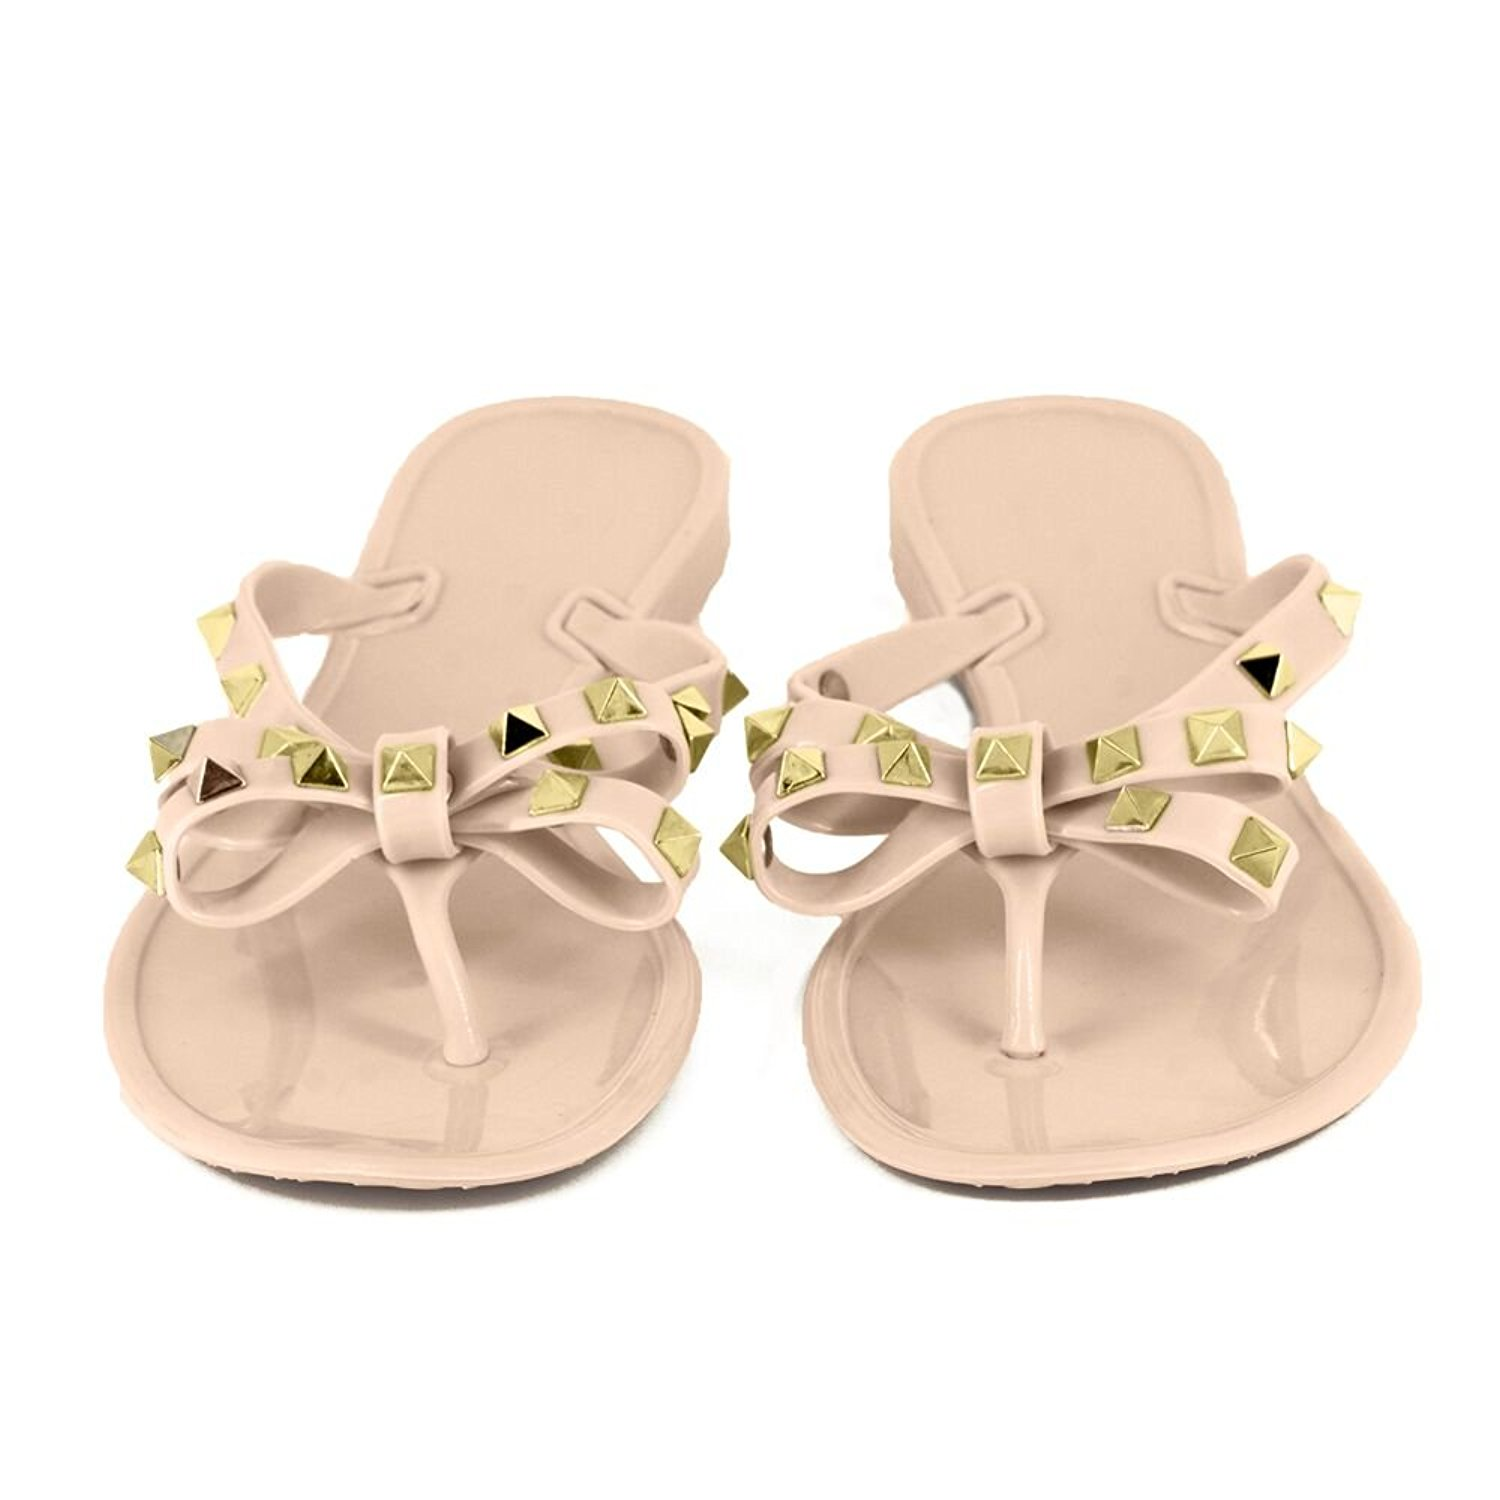 0e48c1b8df109a Get Quotations · Utop Women s Rivets Bowtie Flip Flops Jelly Thong Sandal  Rubber Flat Slipper Summer Beach Rain Shoes